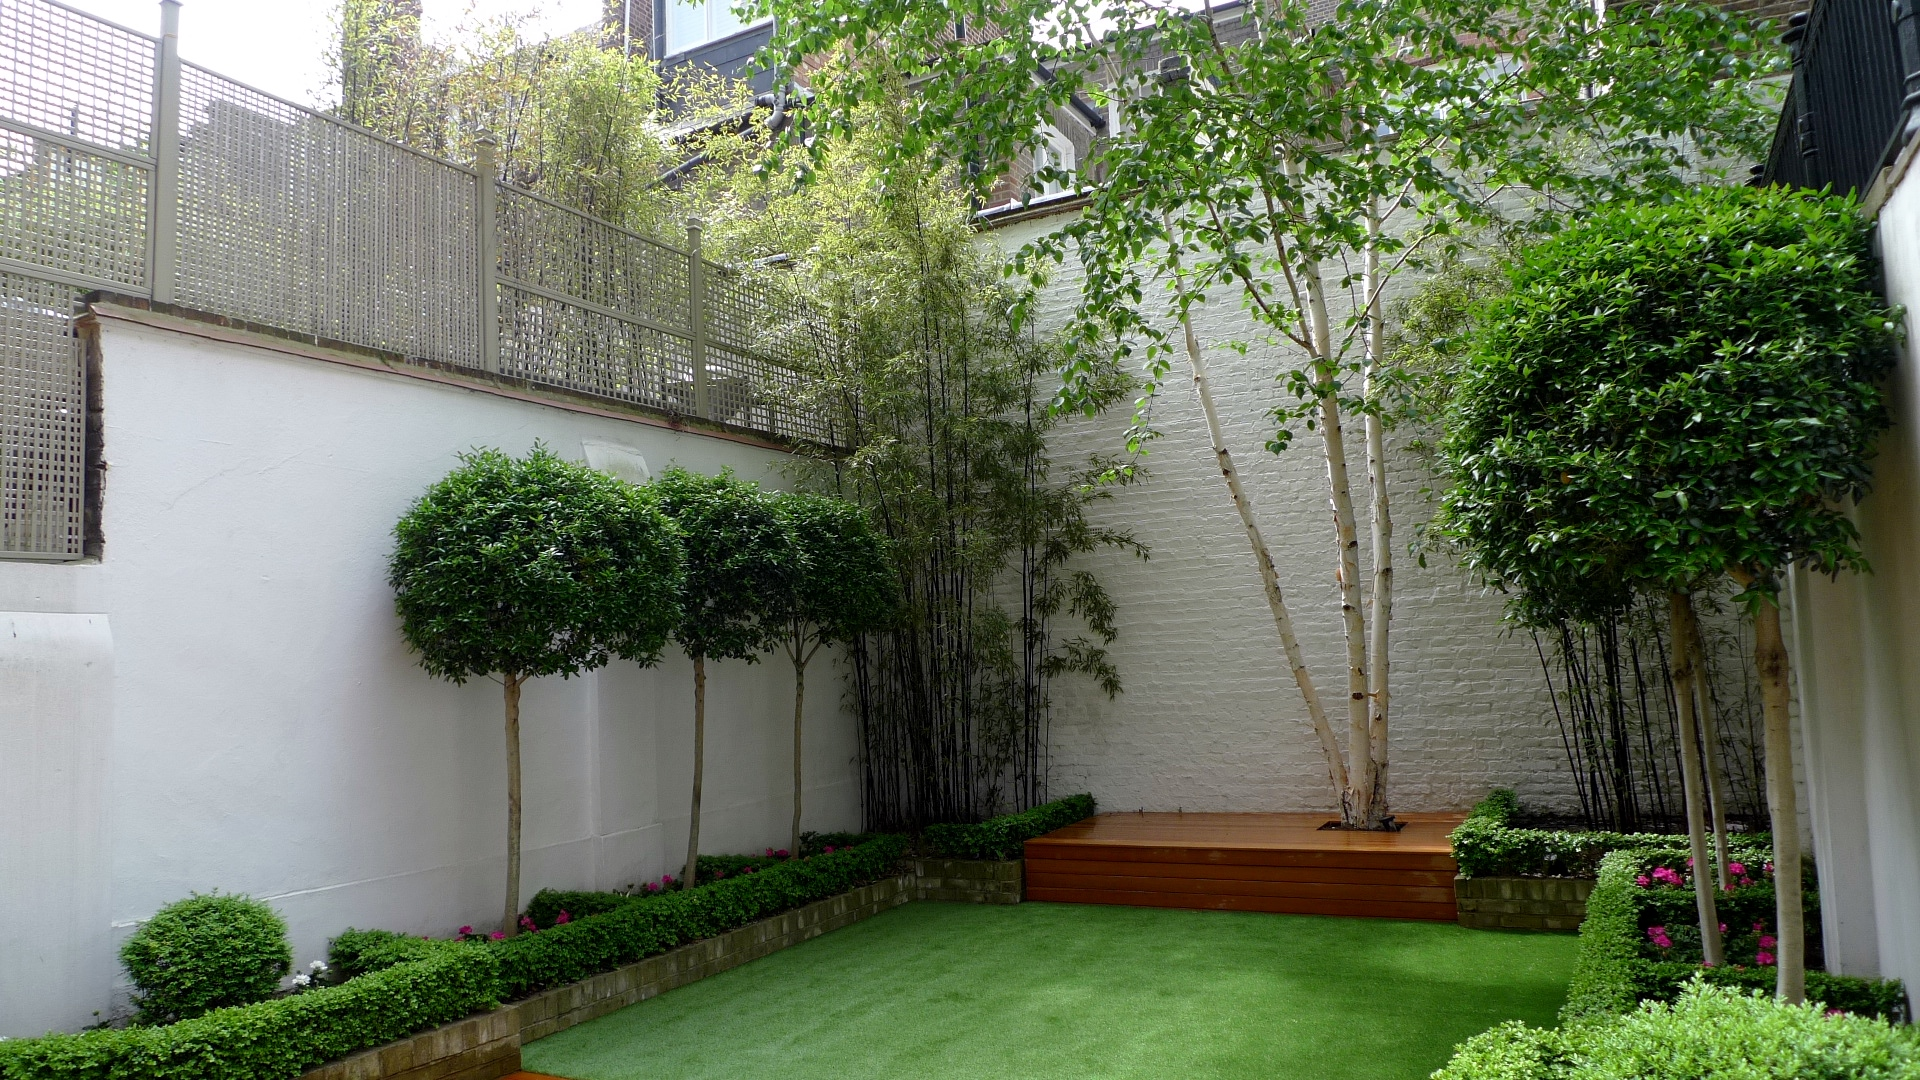 Chelsea modern garden design london london garden blog for Landscape design london